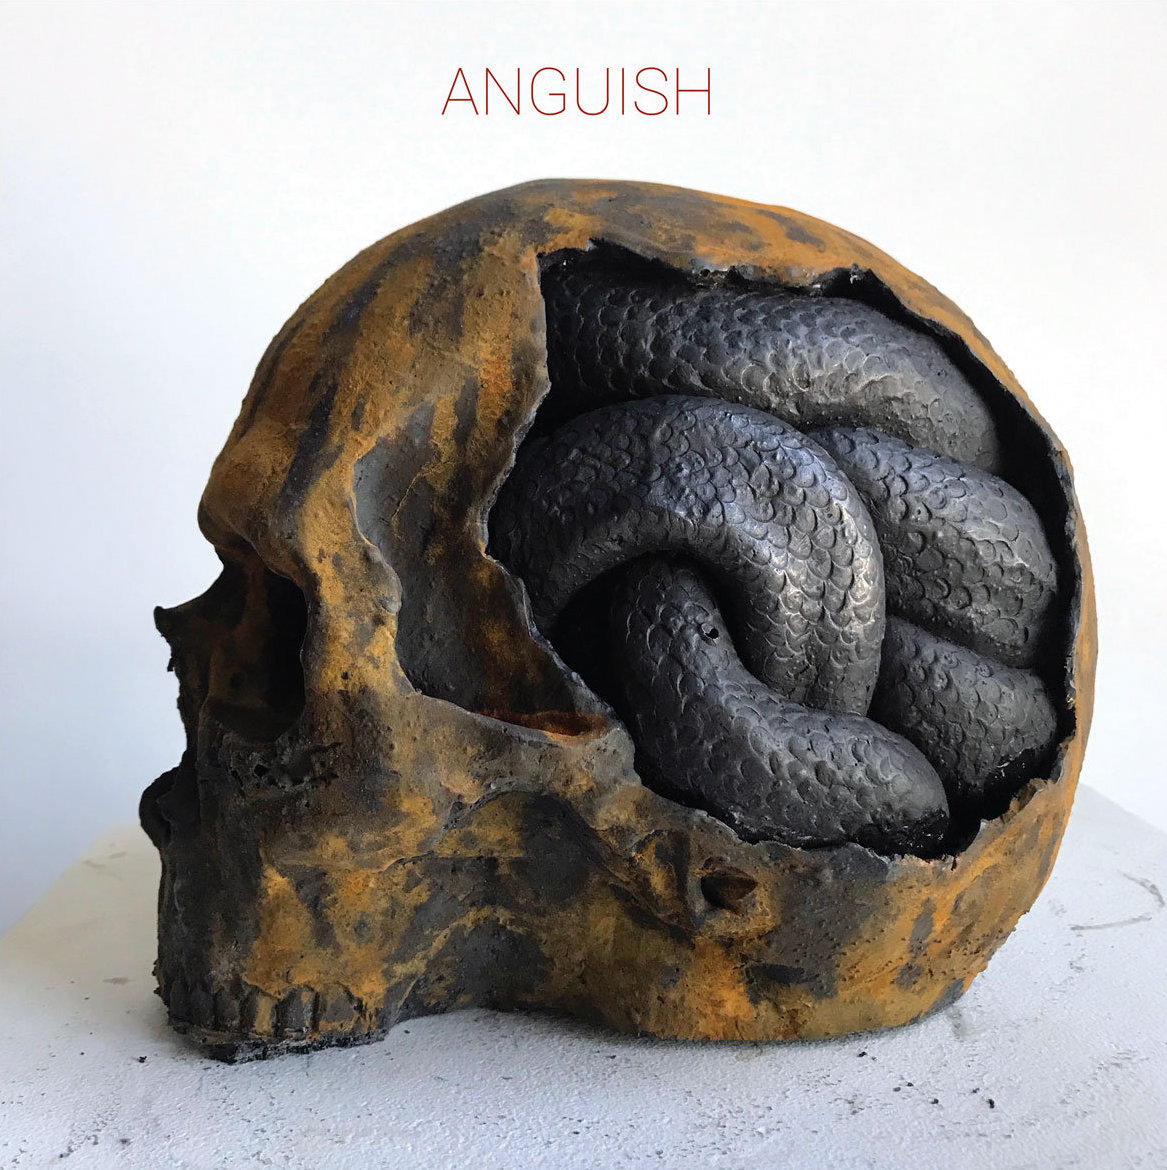 ANGUISH - ALBUM - COVER 2018 - WEB